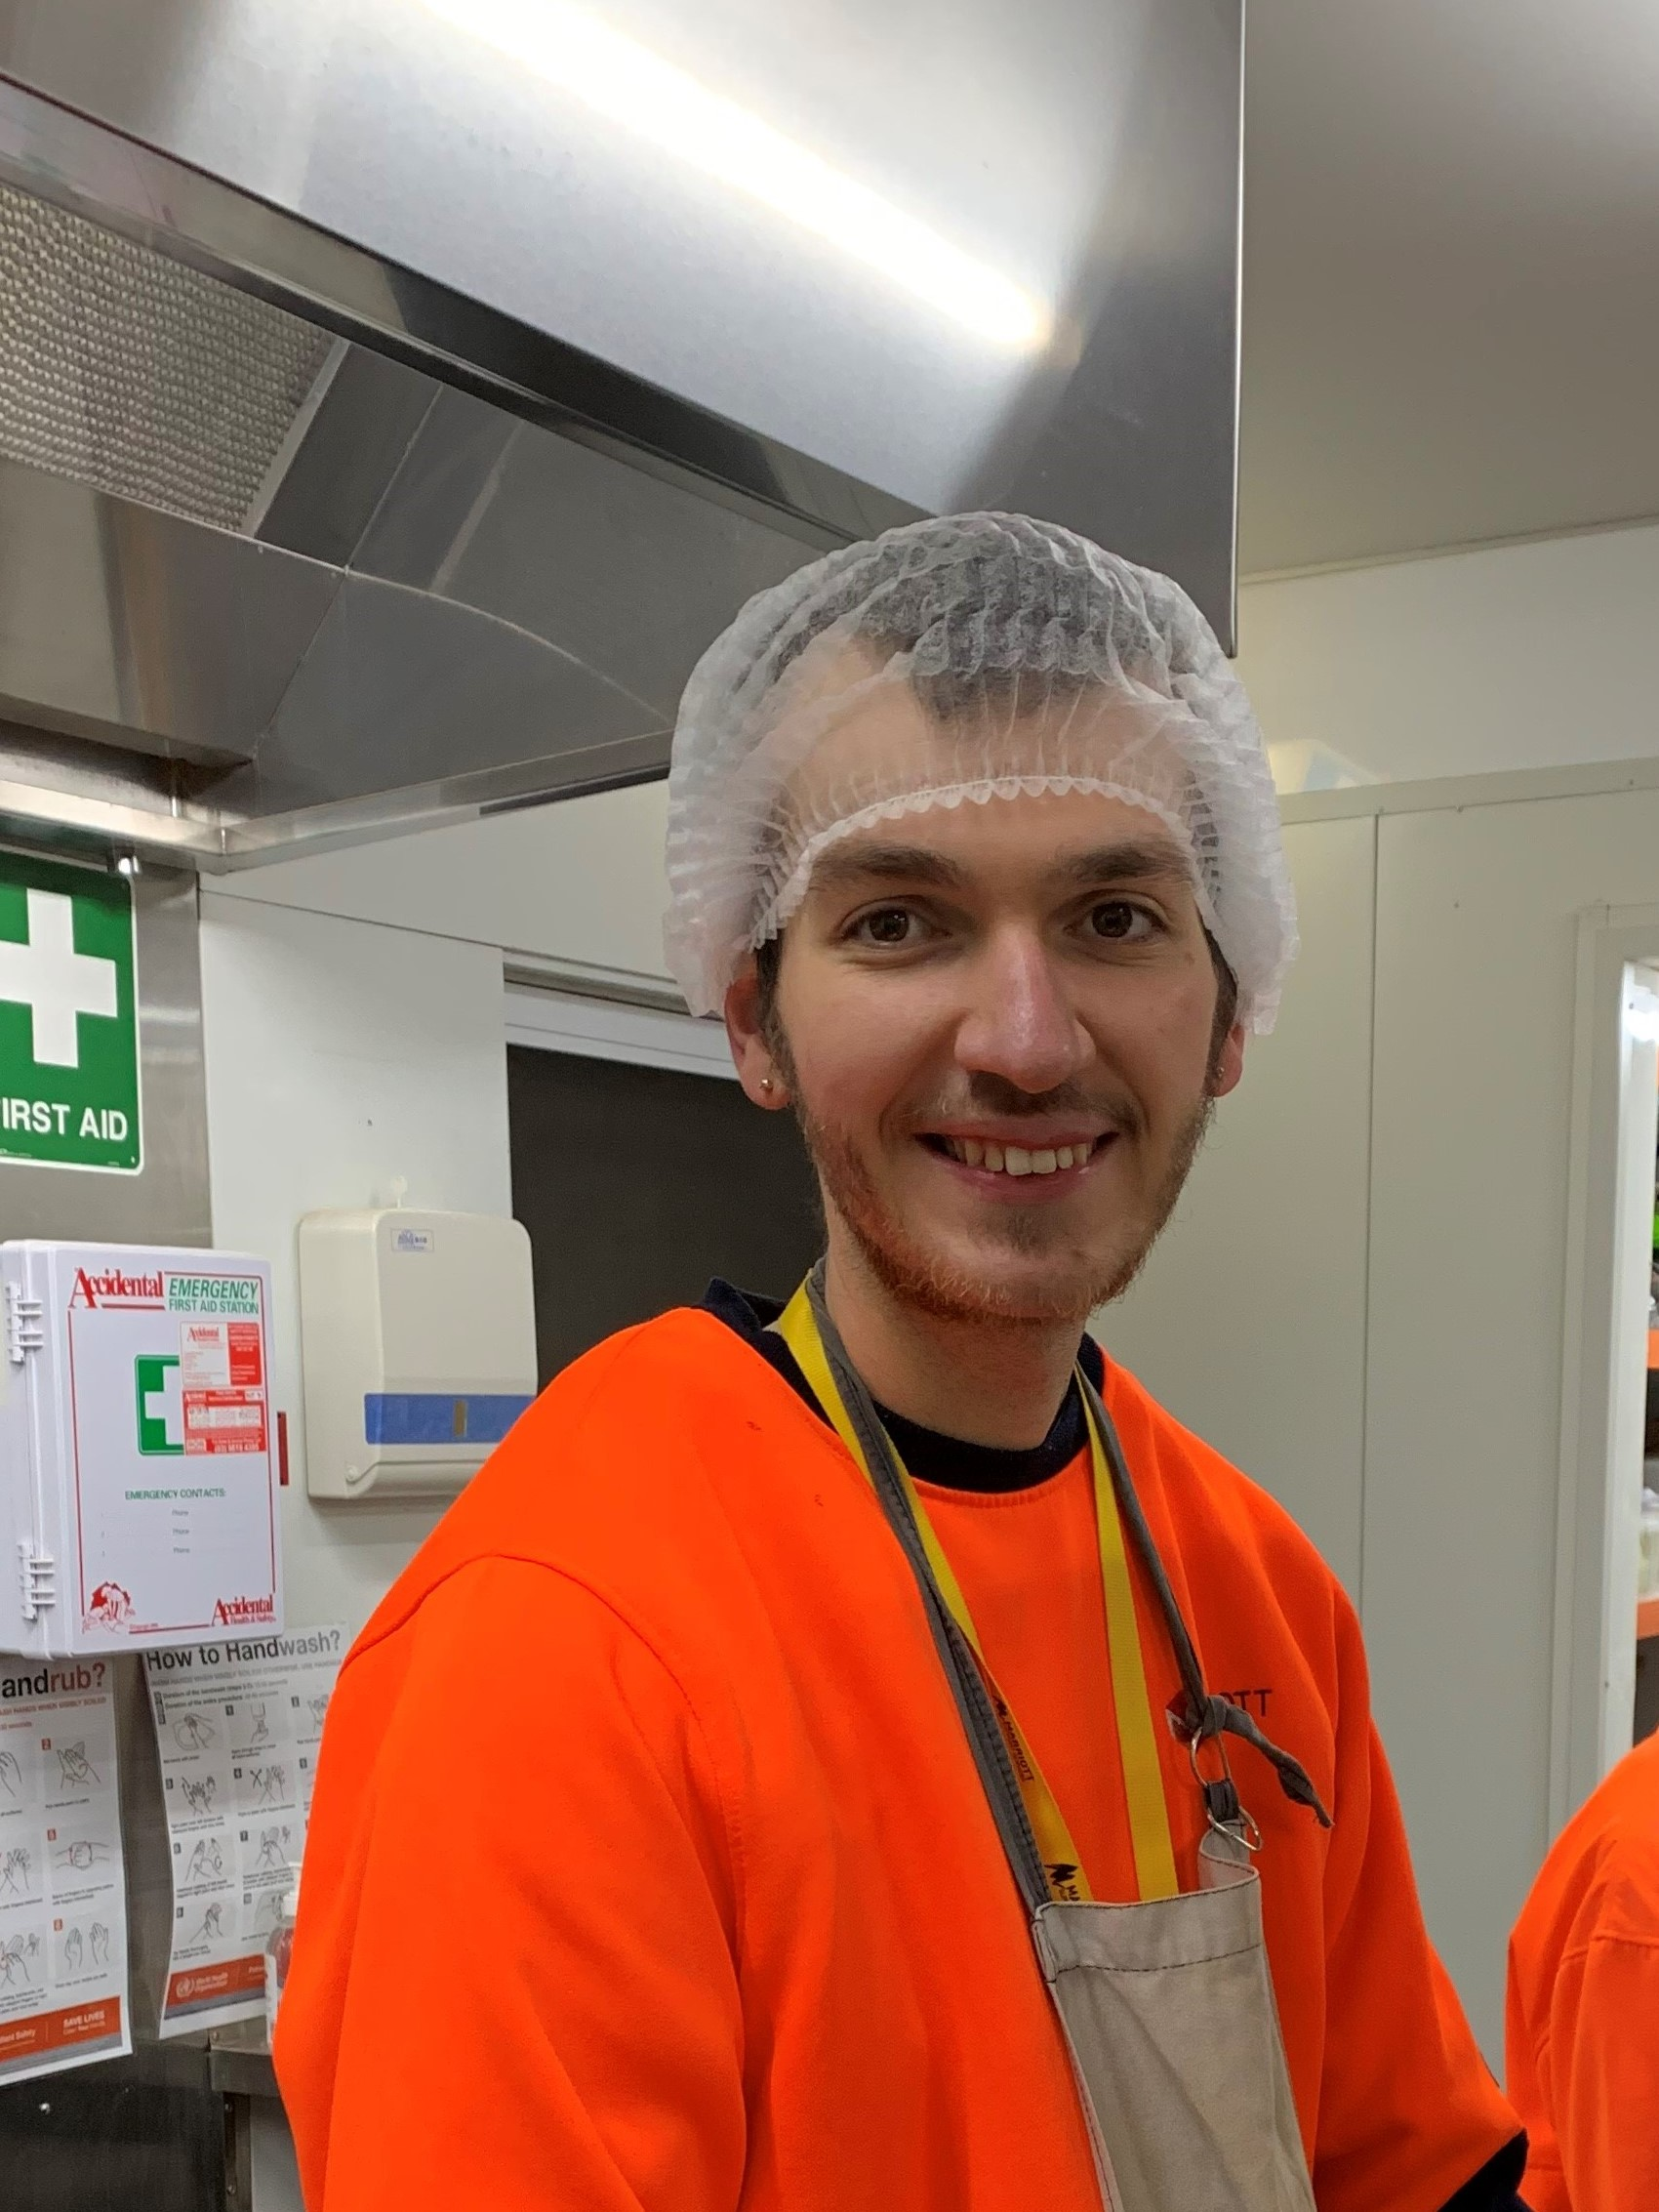 Employee with a disability smiling with a hair net on head in a kitchen